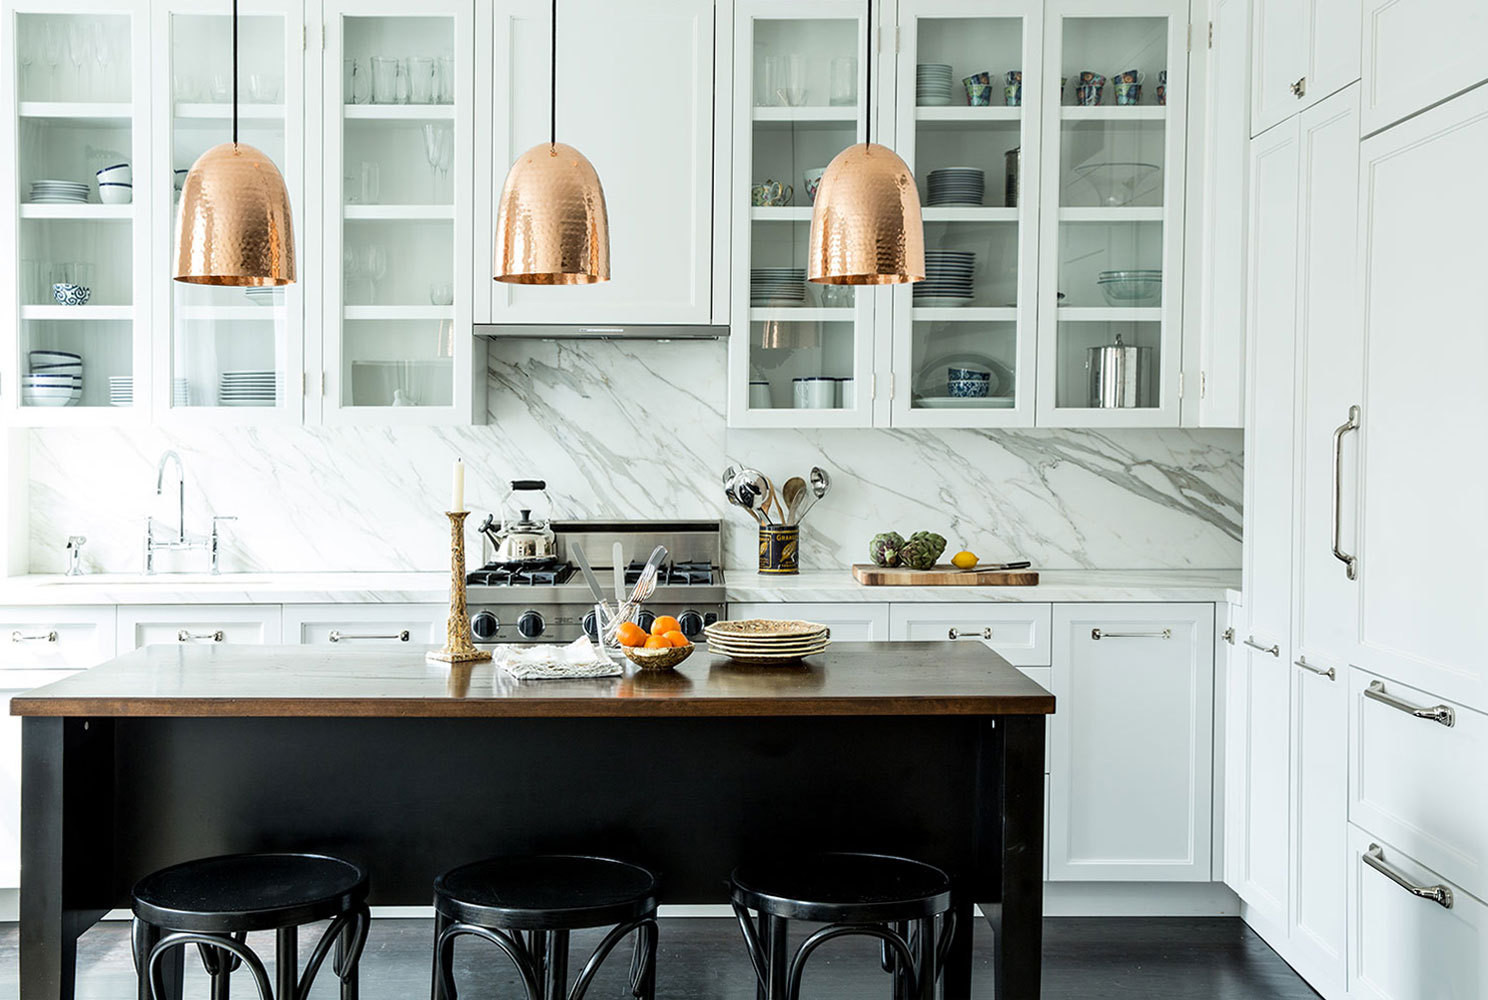 Marble and copper strike subtle yet luxe notes in the Winsteads' open kitchen.